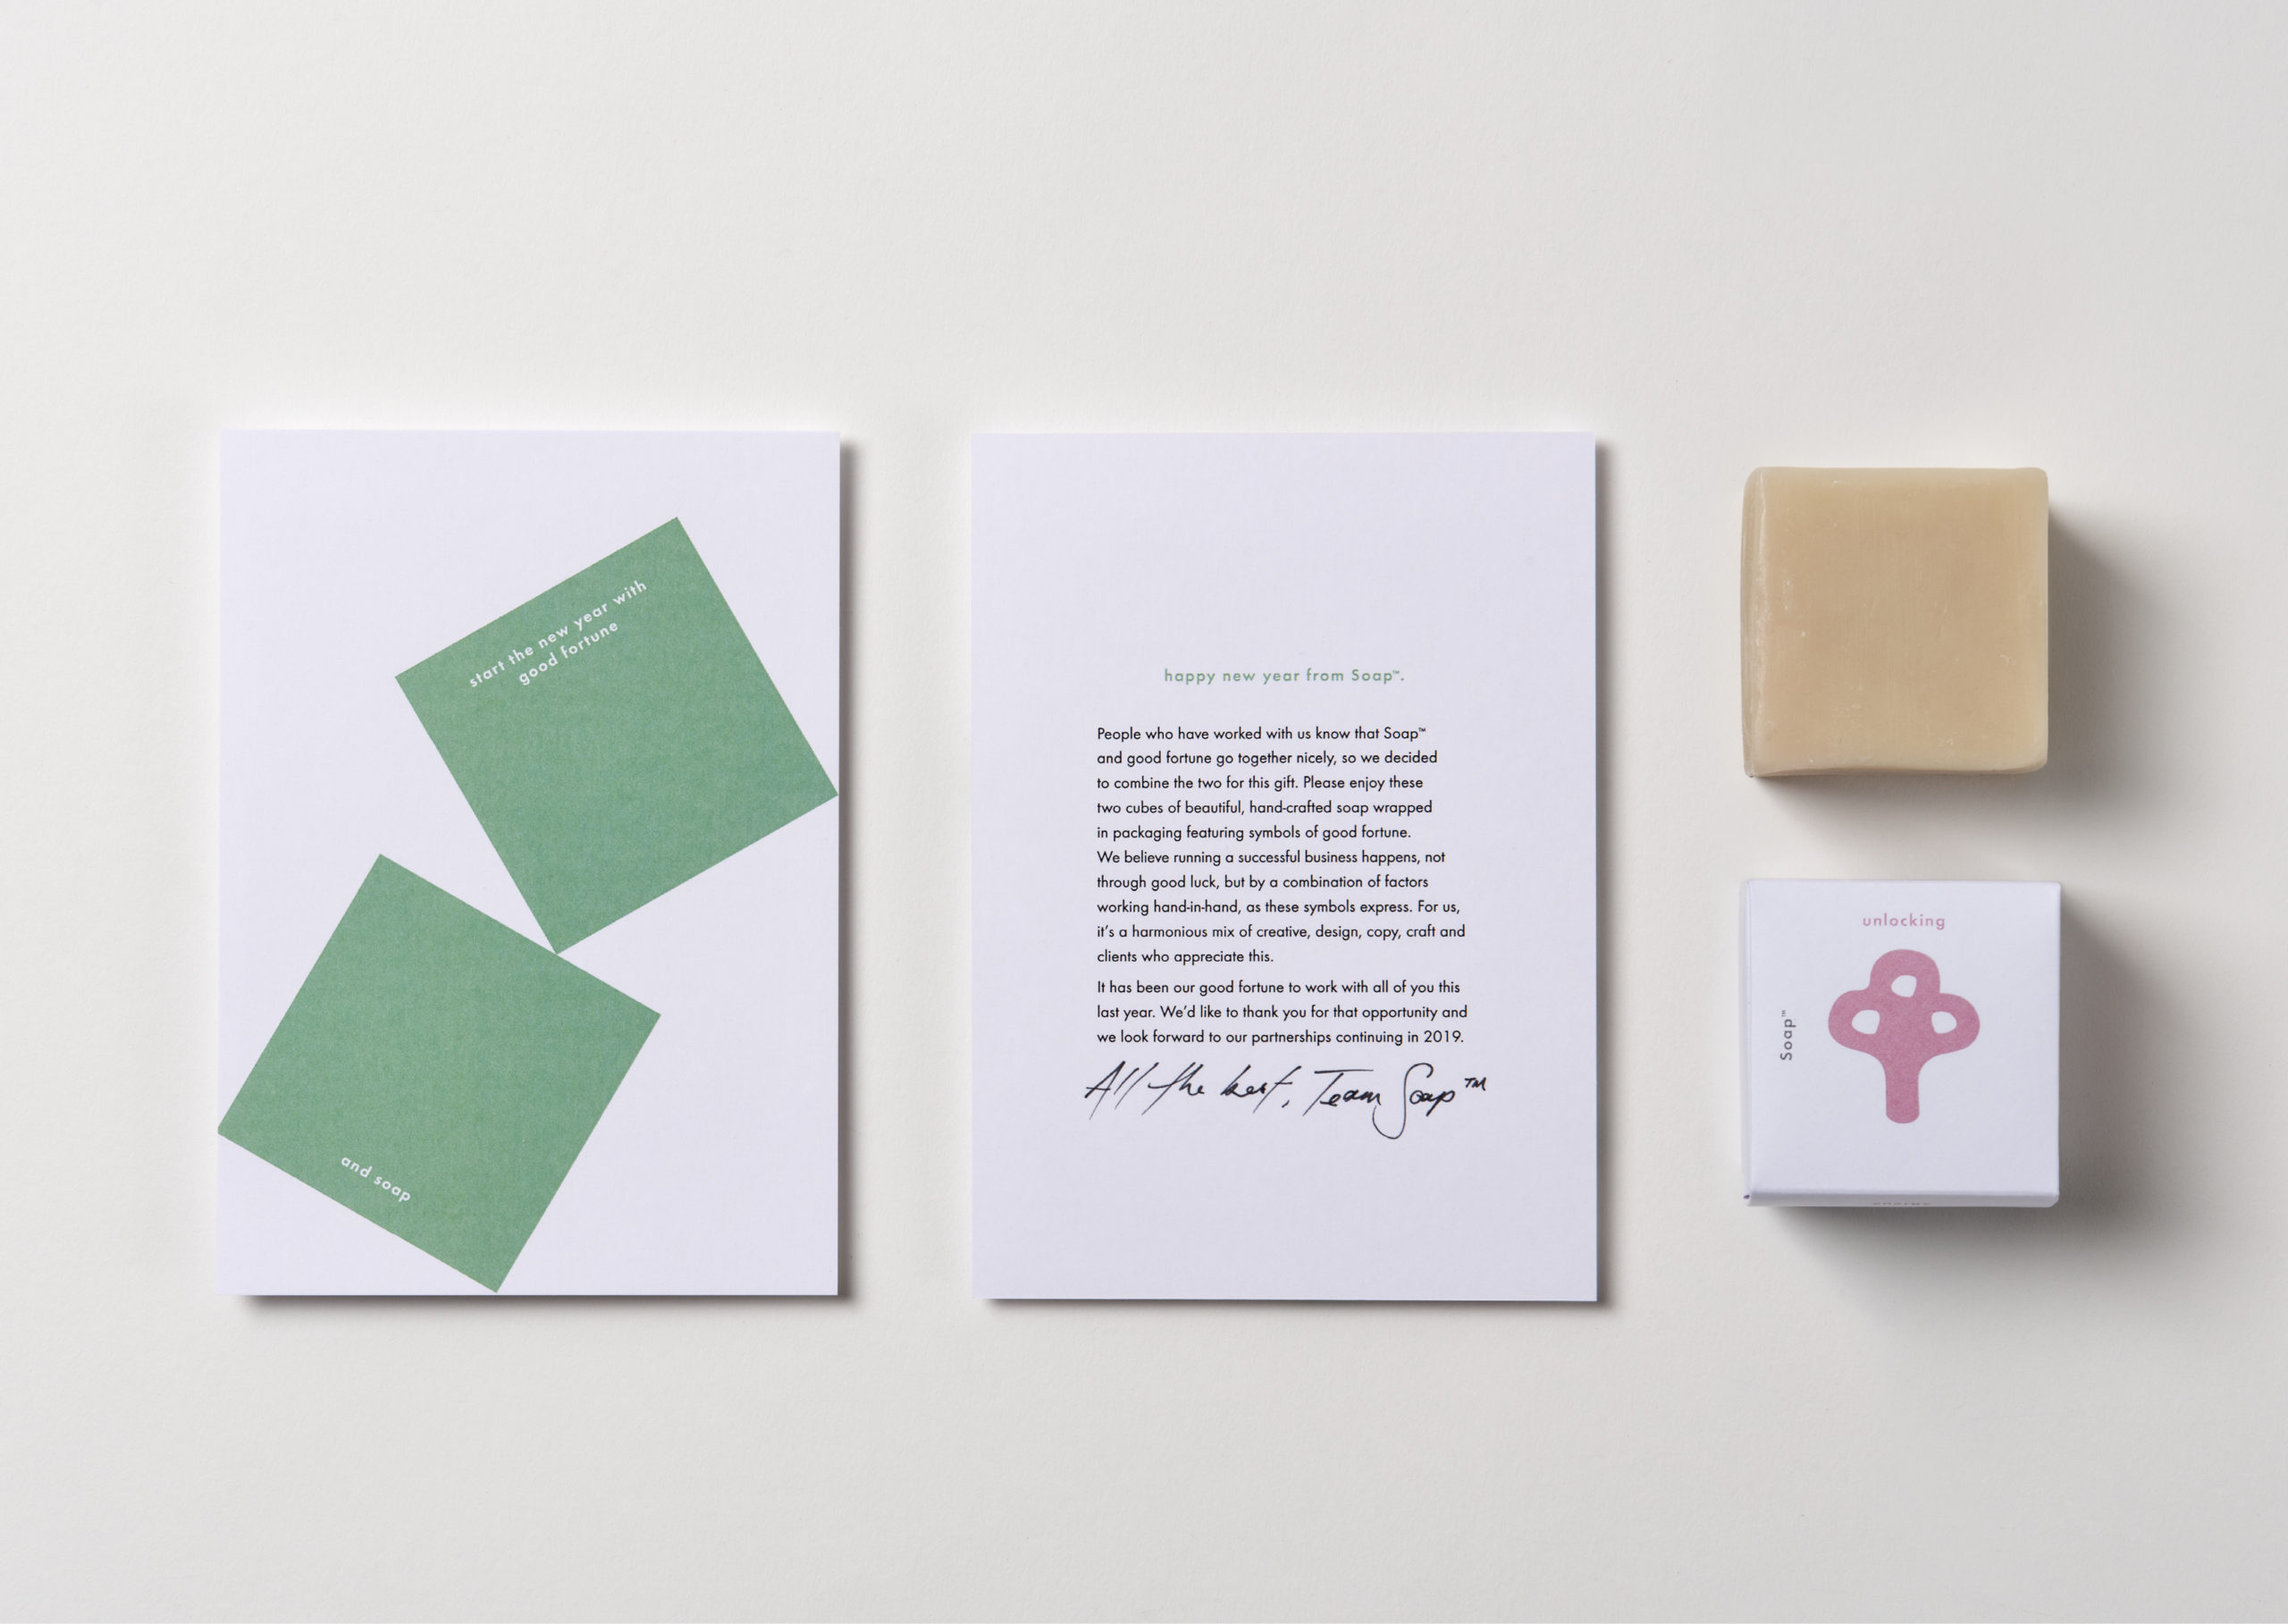 Client gift card featuring two teal cubes and soap in illustrated packaging